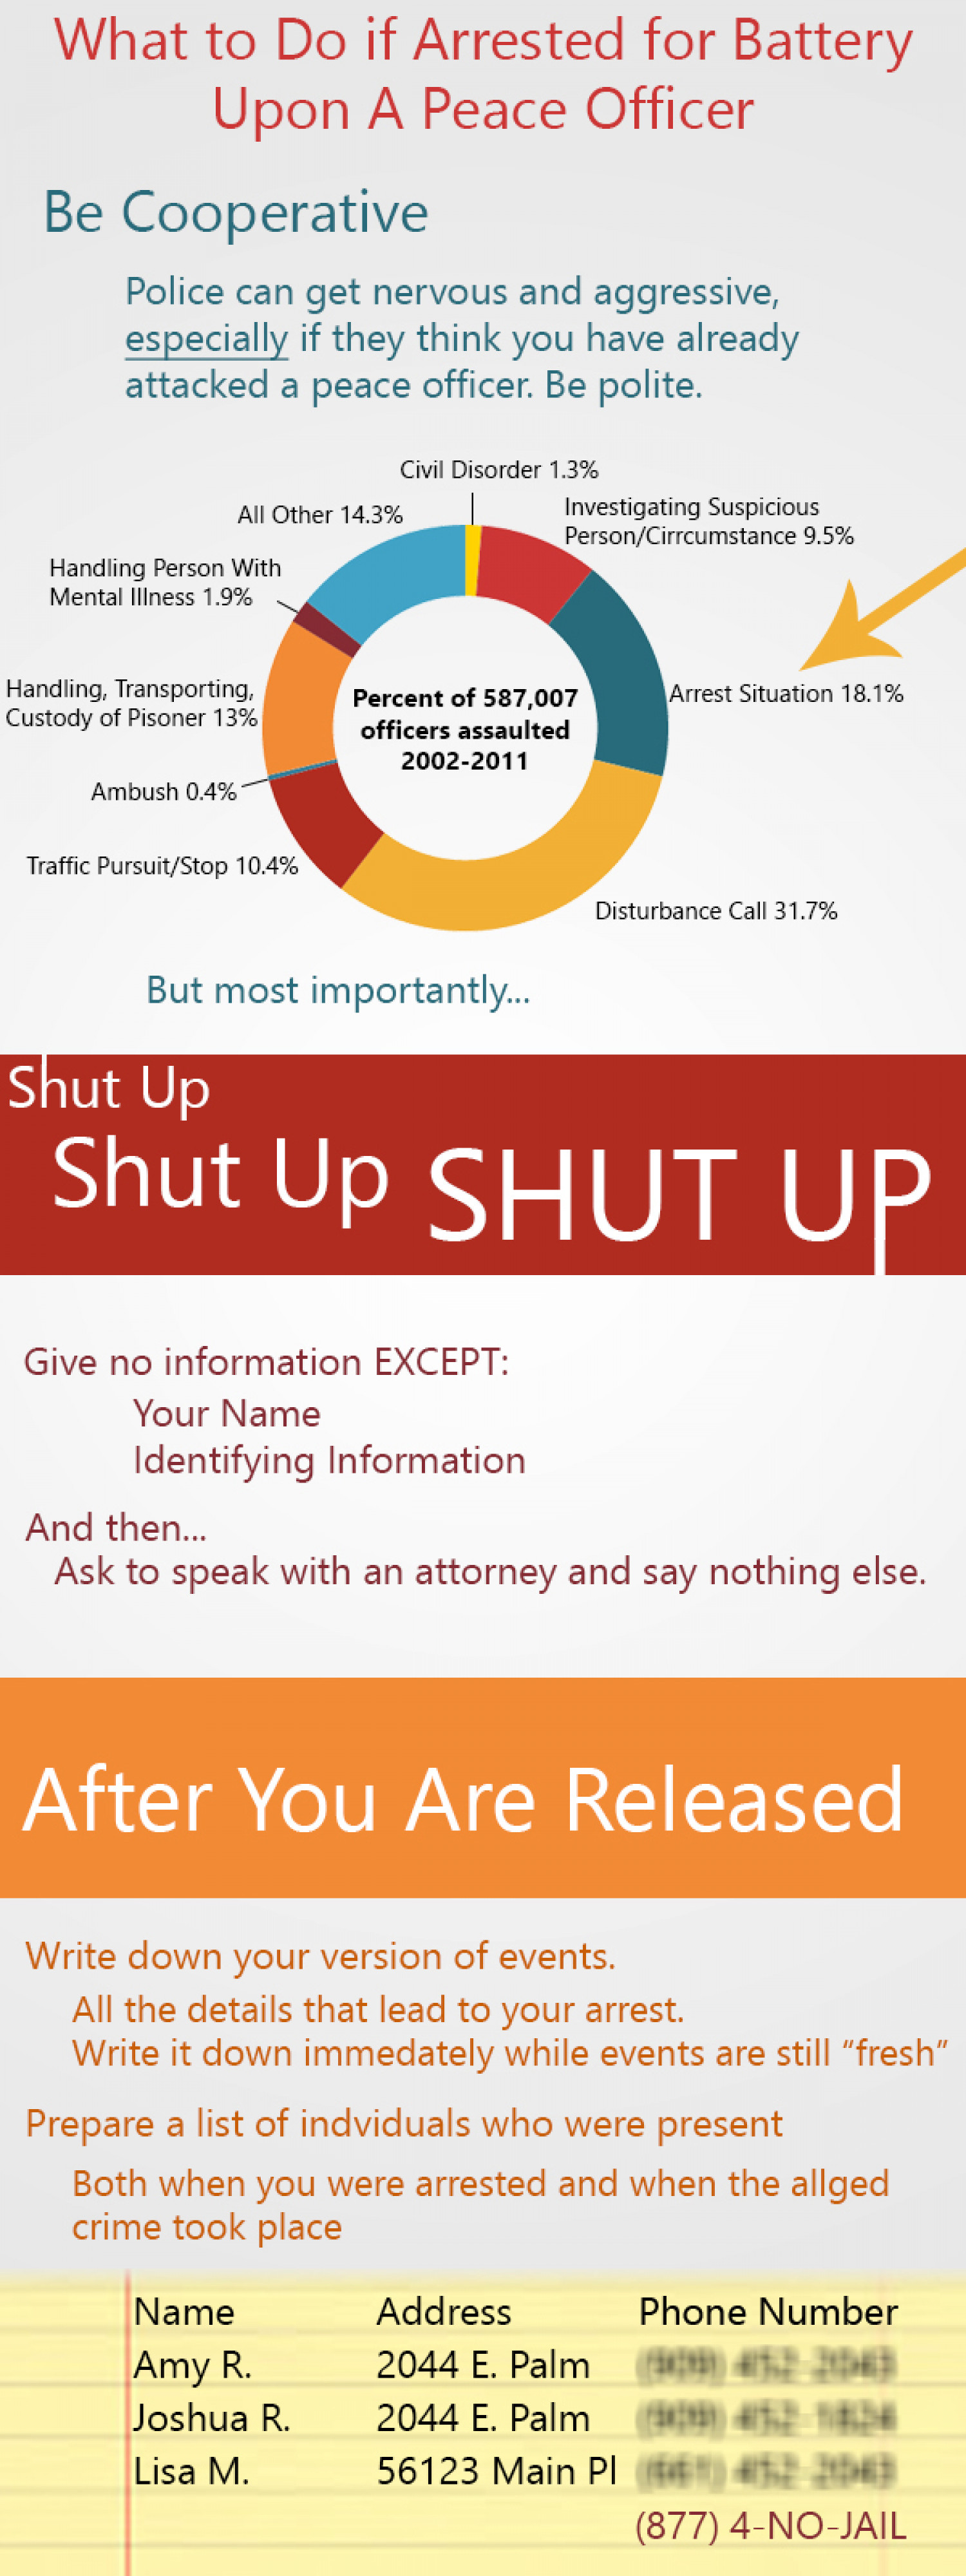 What to Do if Arrested for Battery on Police Officer Infographic